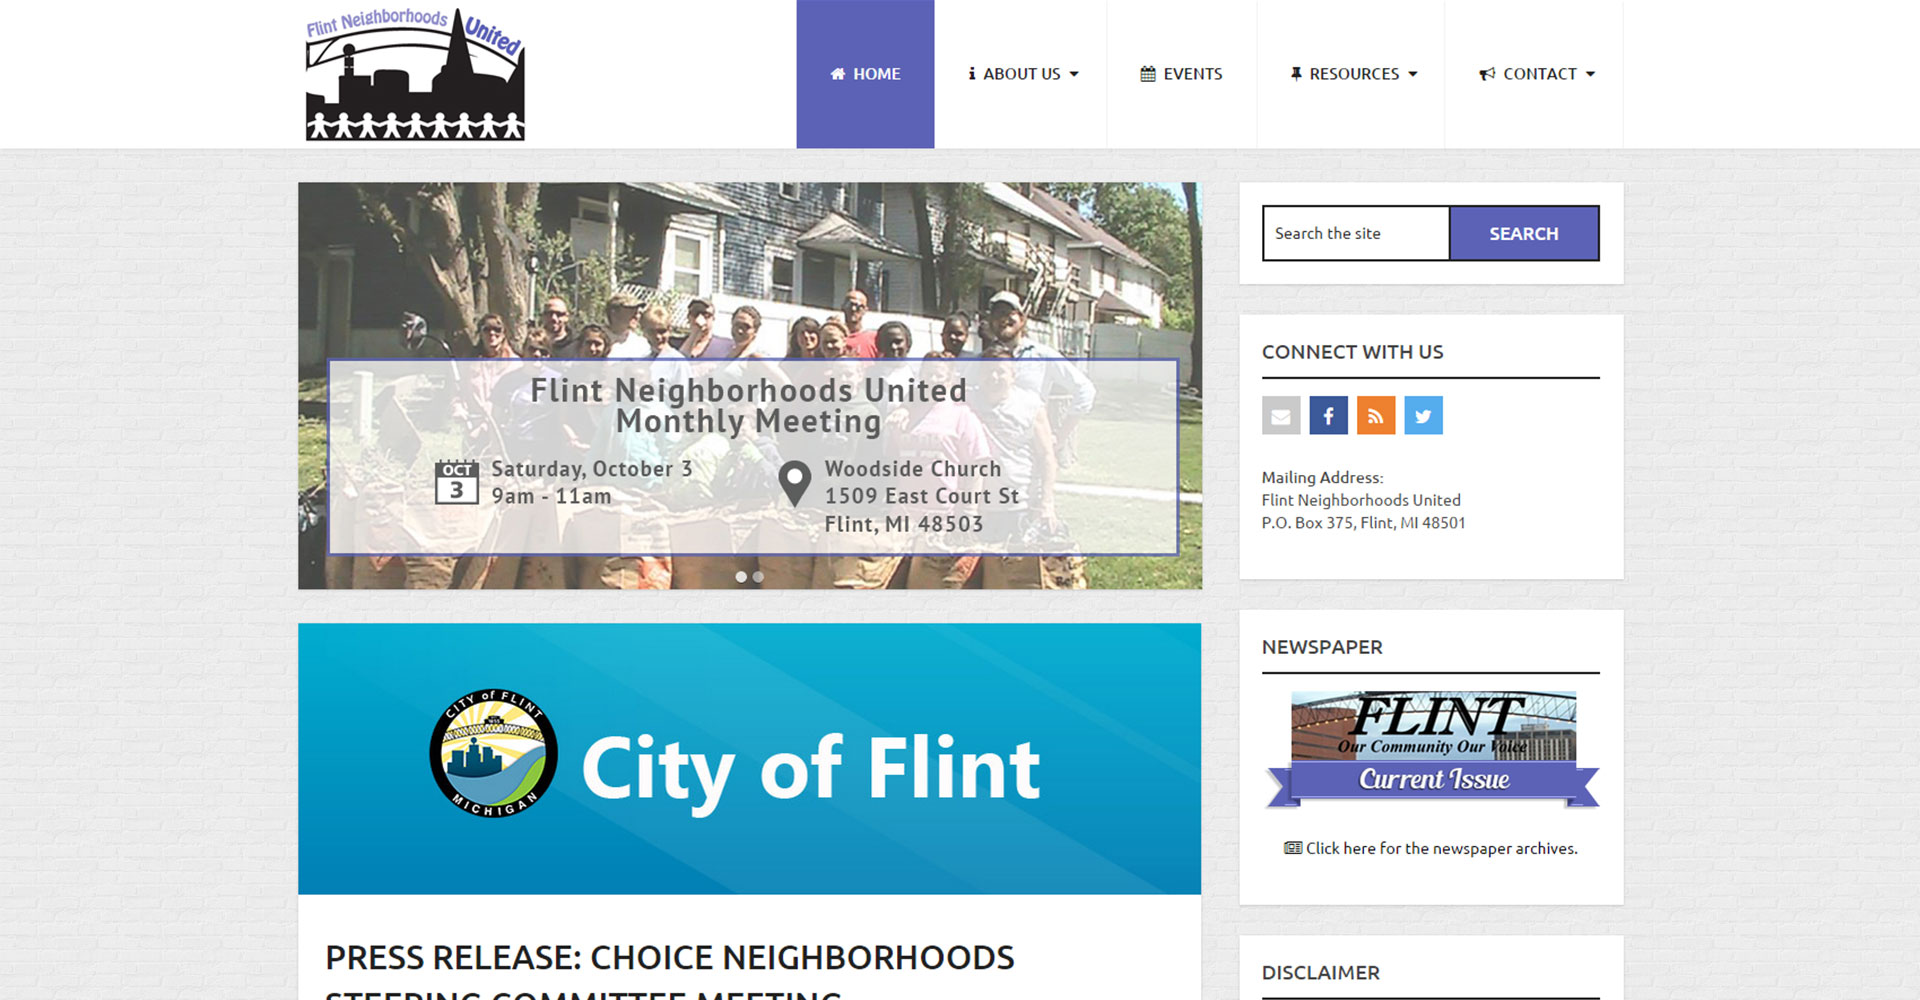 Flint Neighborhoods United - Zoda Design